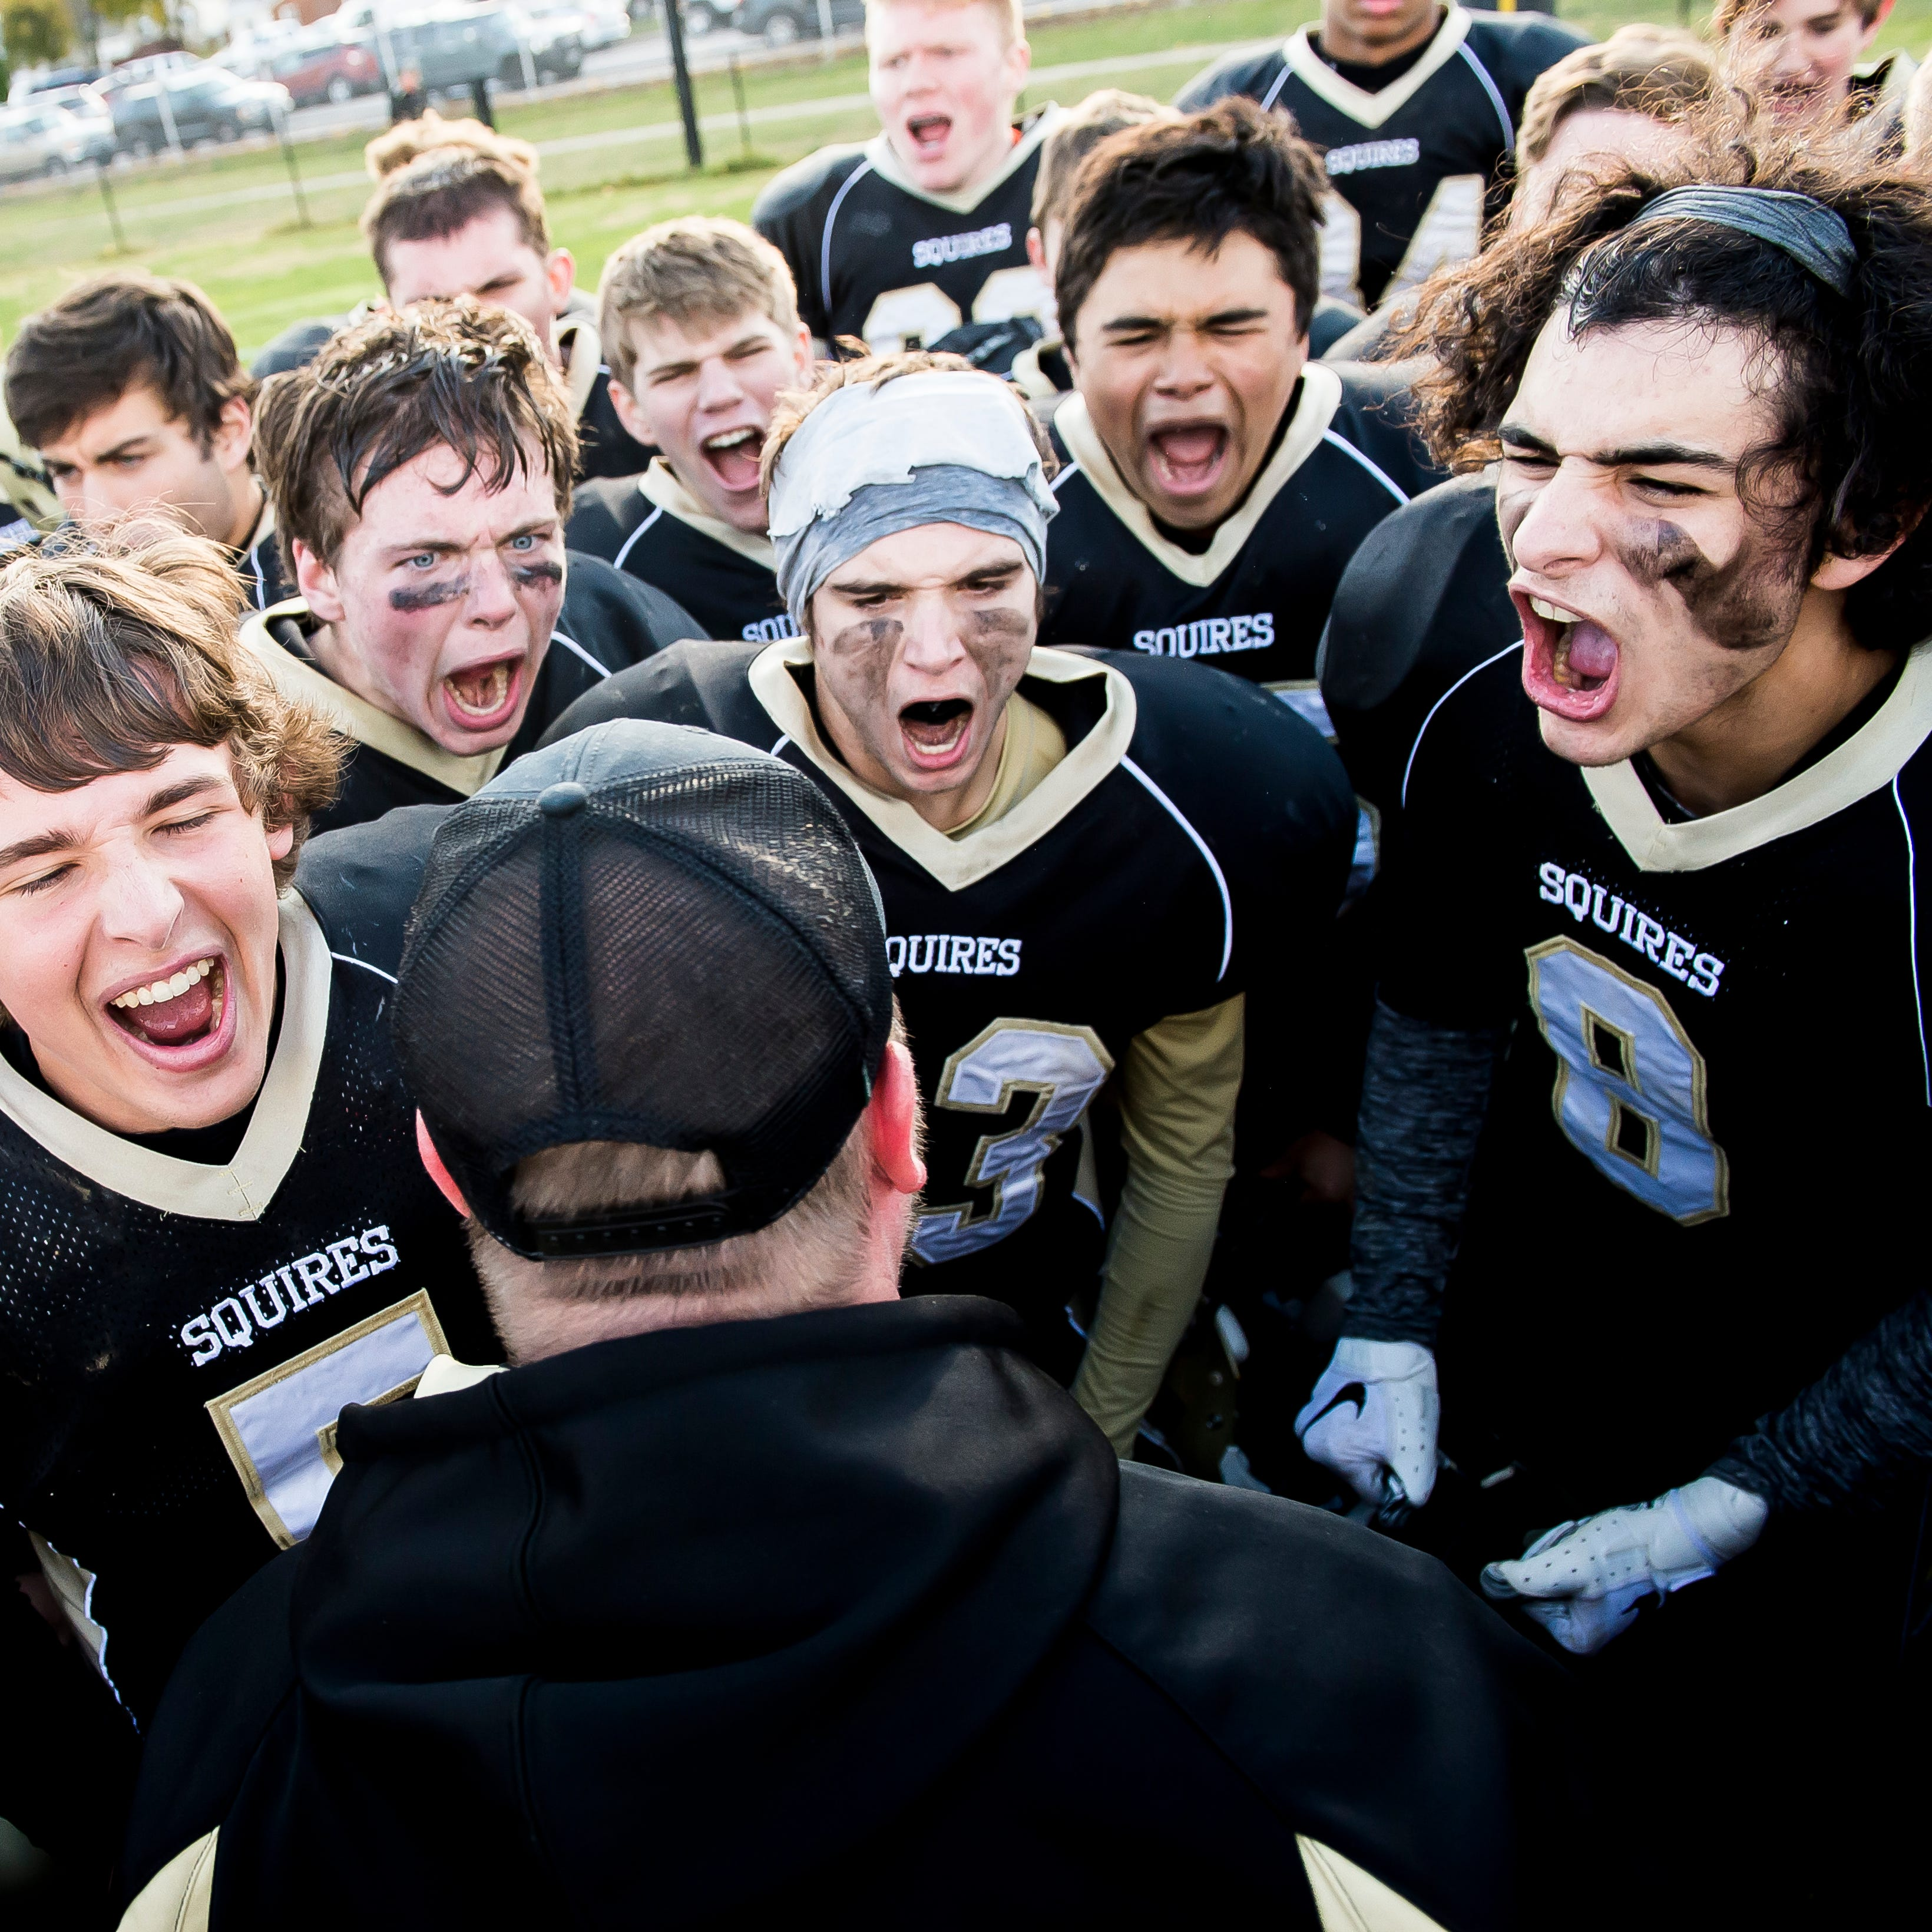 Delone Catholic trounces Upper Dauphin to set up rivalry game in district championship